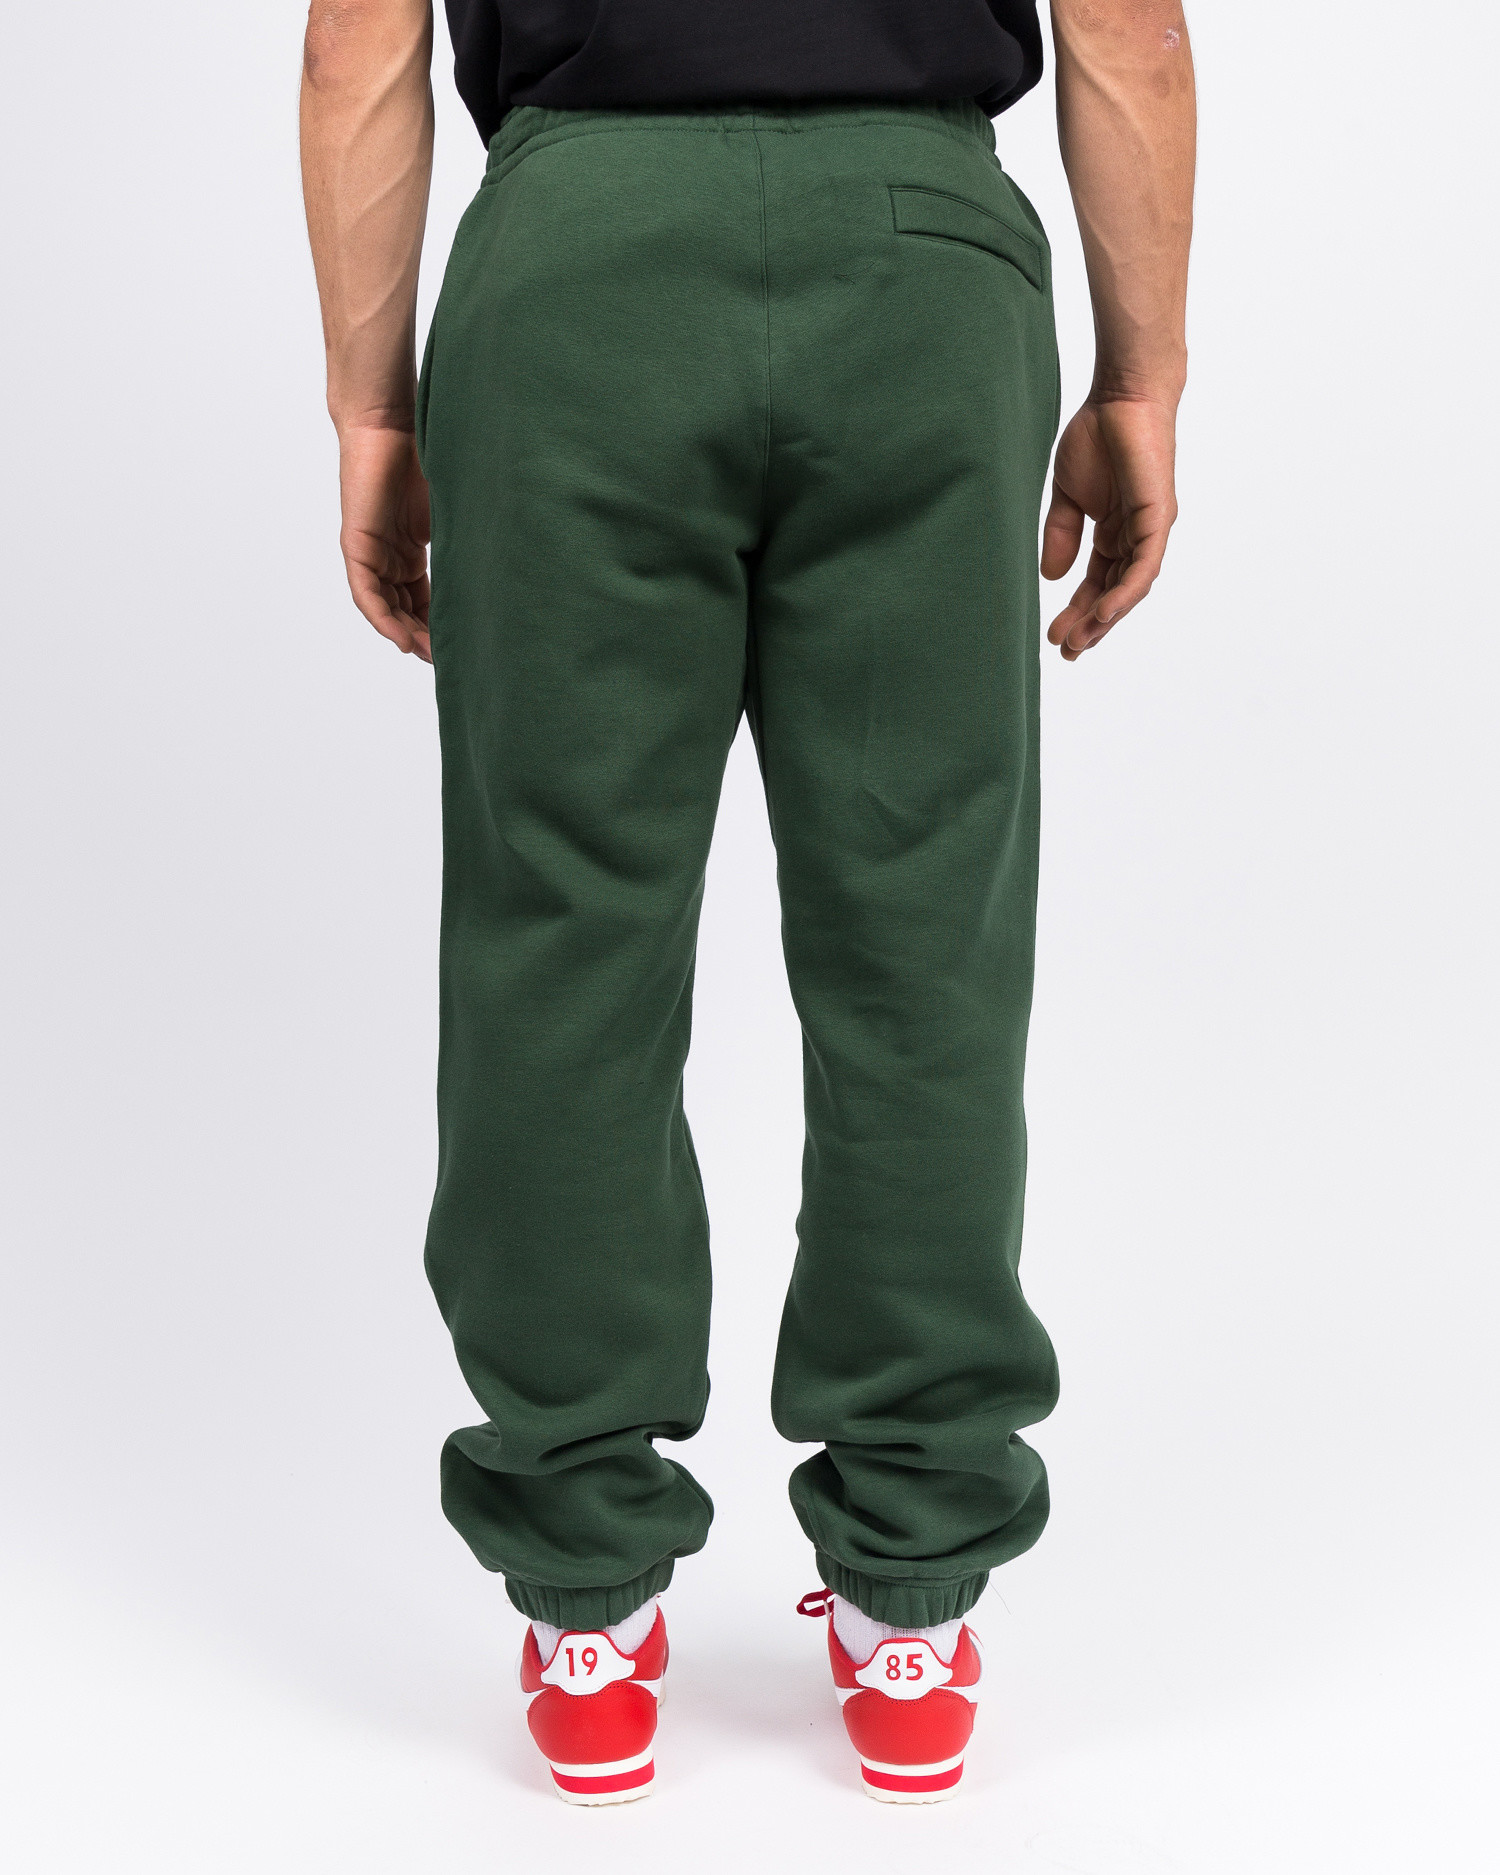 Nike M nrg club pant cf bb stranger things Dk Fir/white/sail